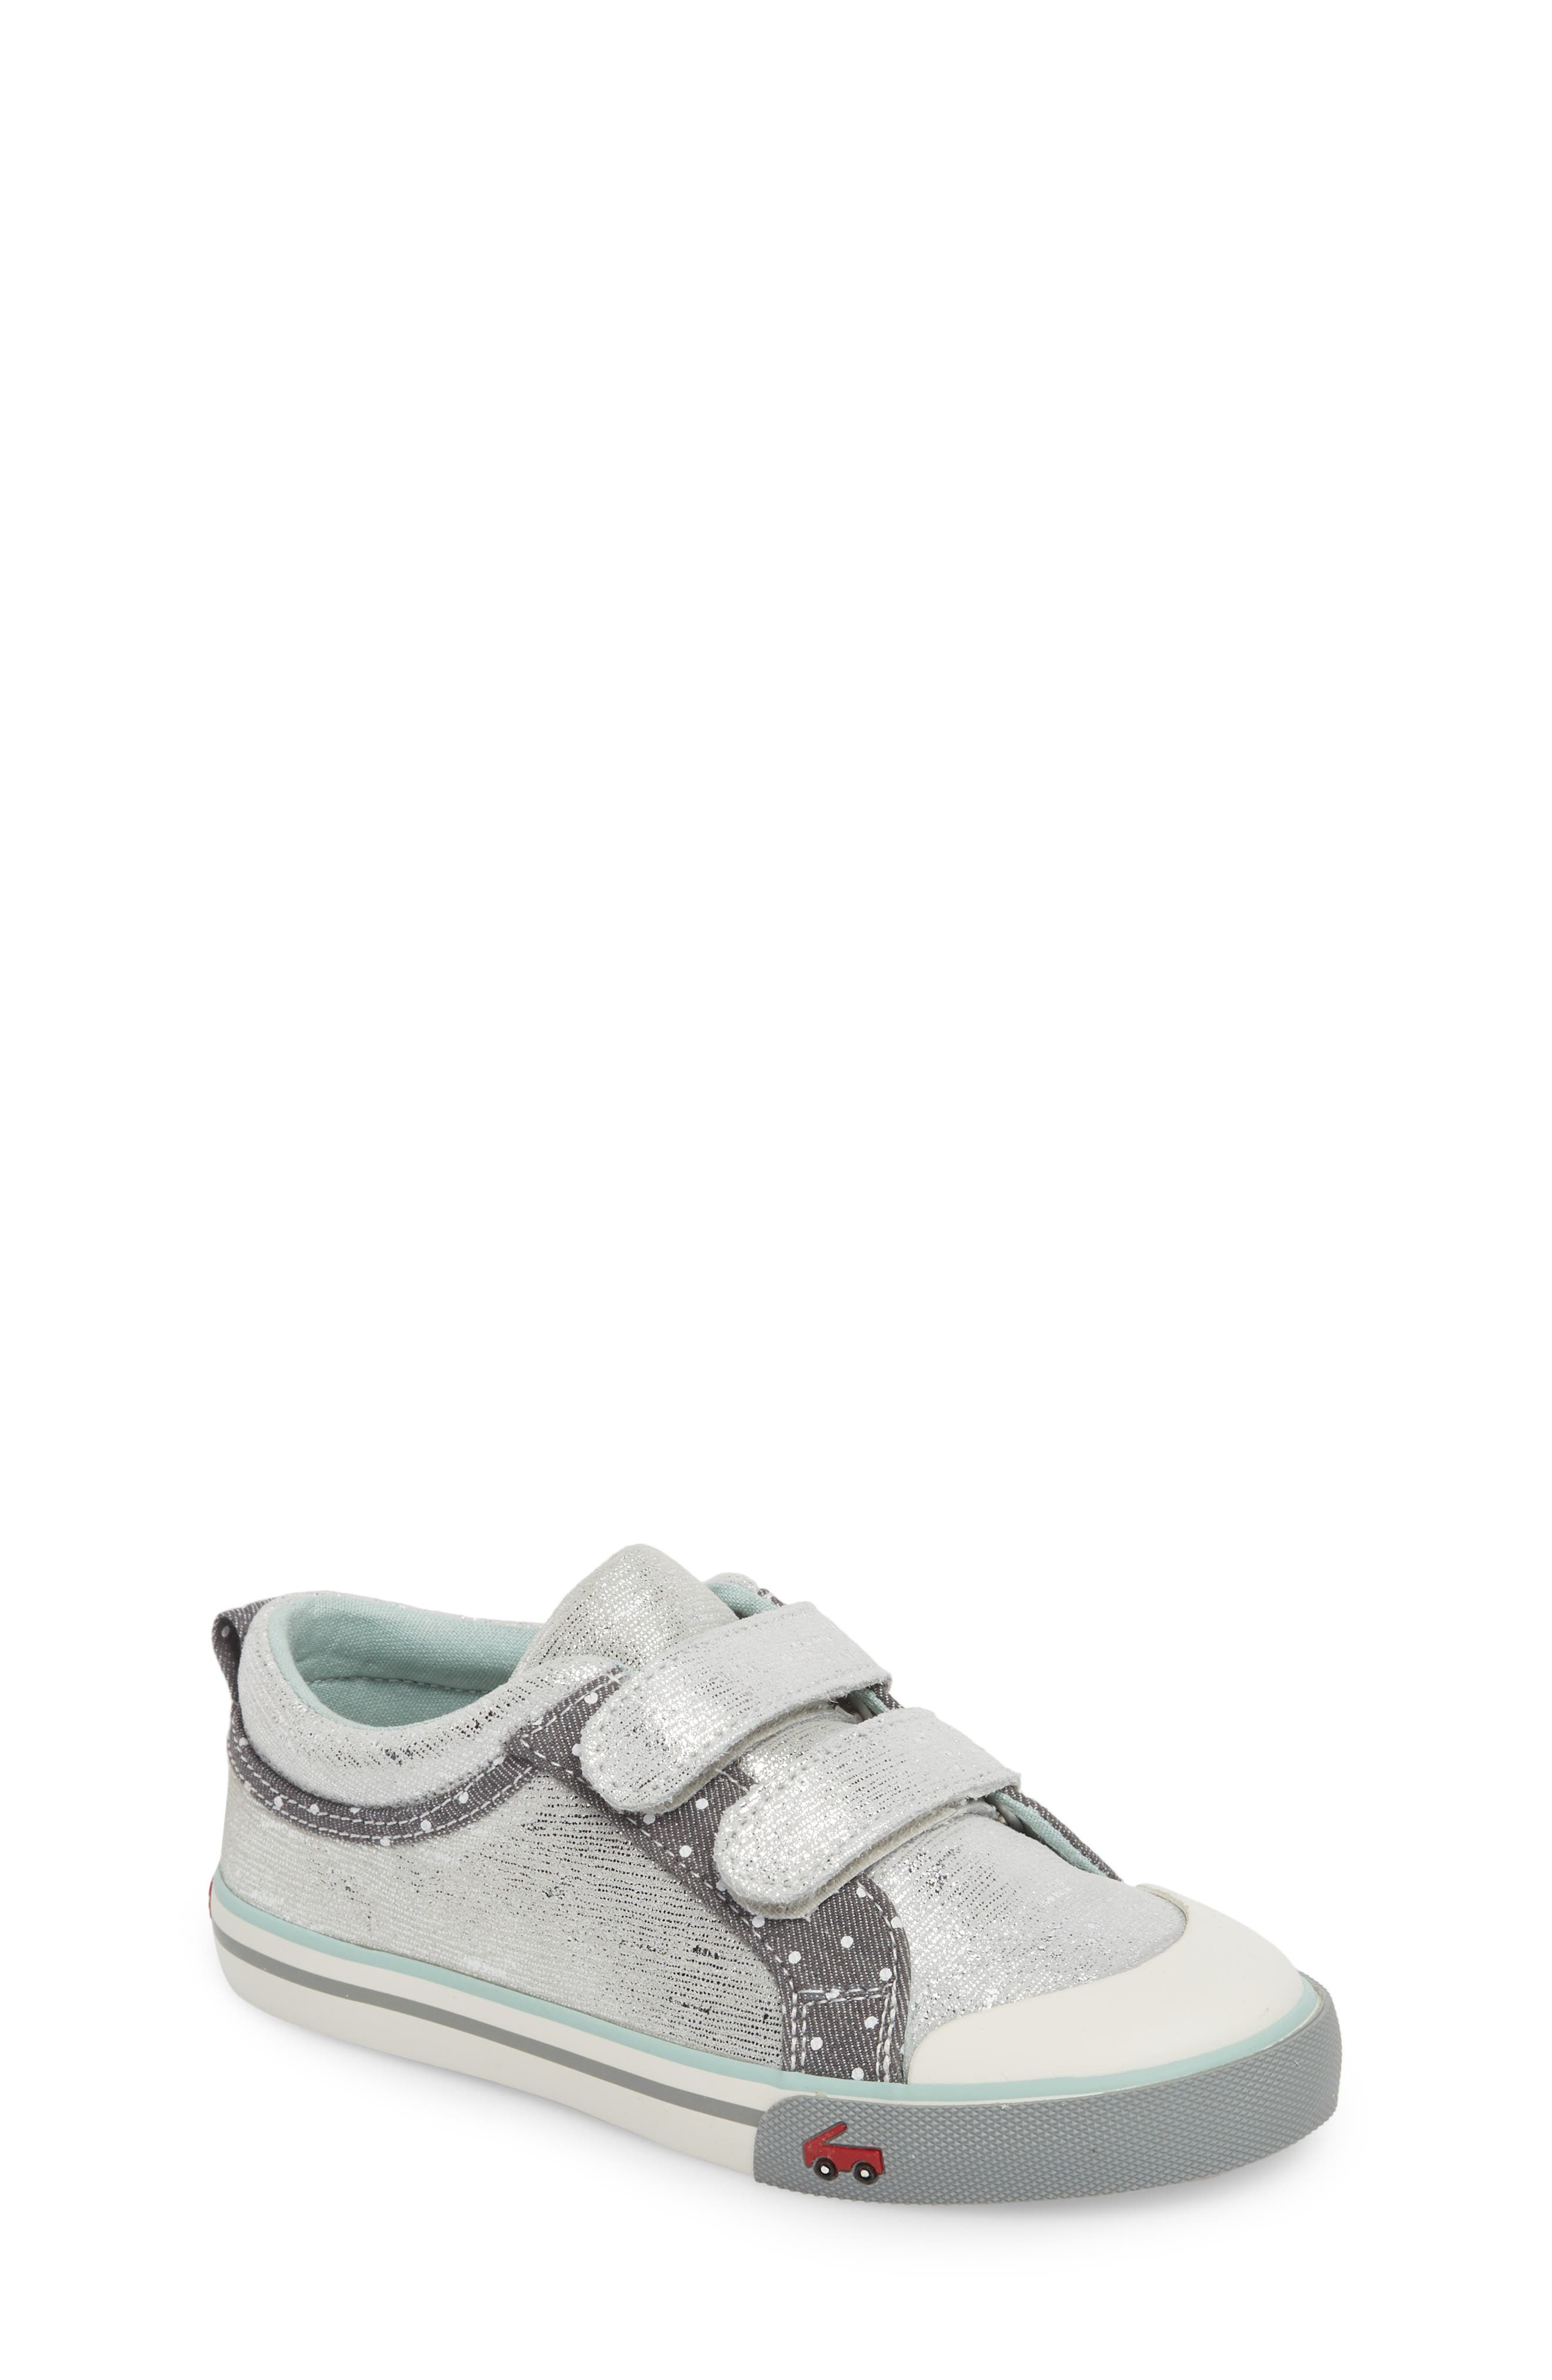 Robyne Sneaker,                             Main thumbnail 1, color,                             SILVER LEATHER